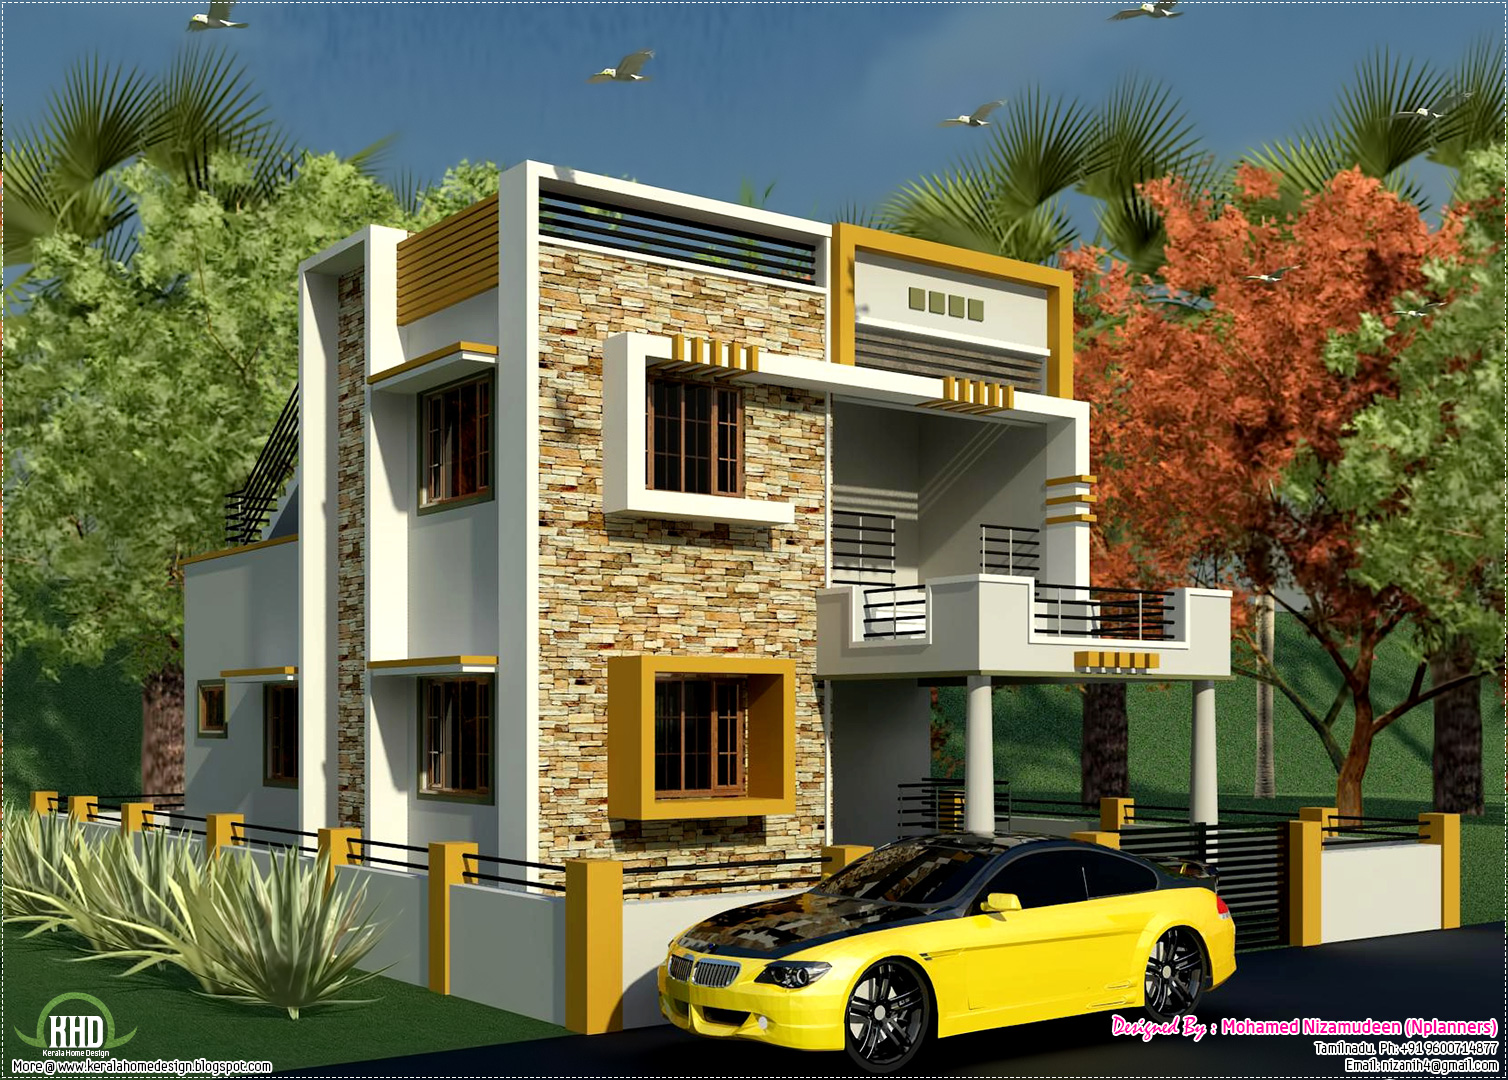 South indian style new modern 1460 sq feet house design for 2 bhk house plans south indian style